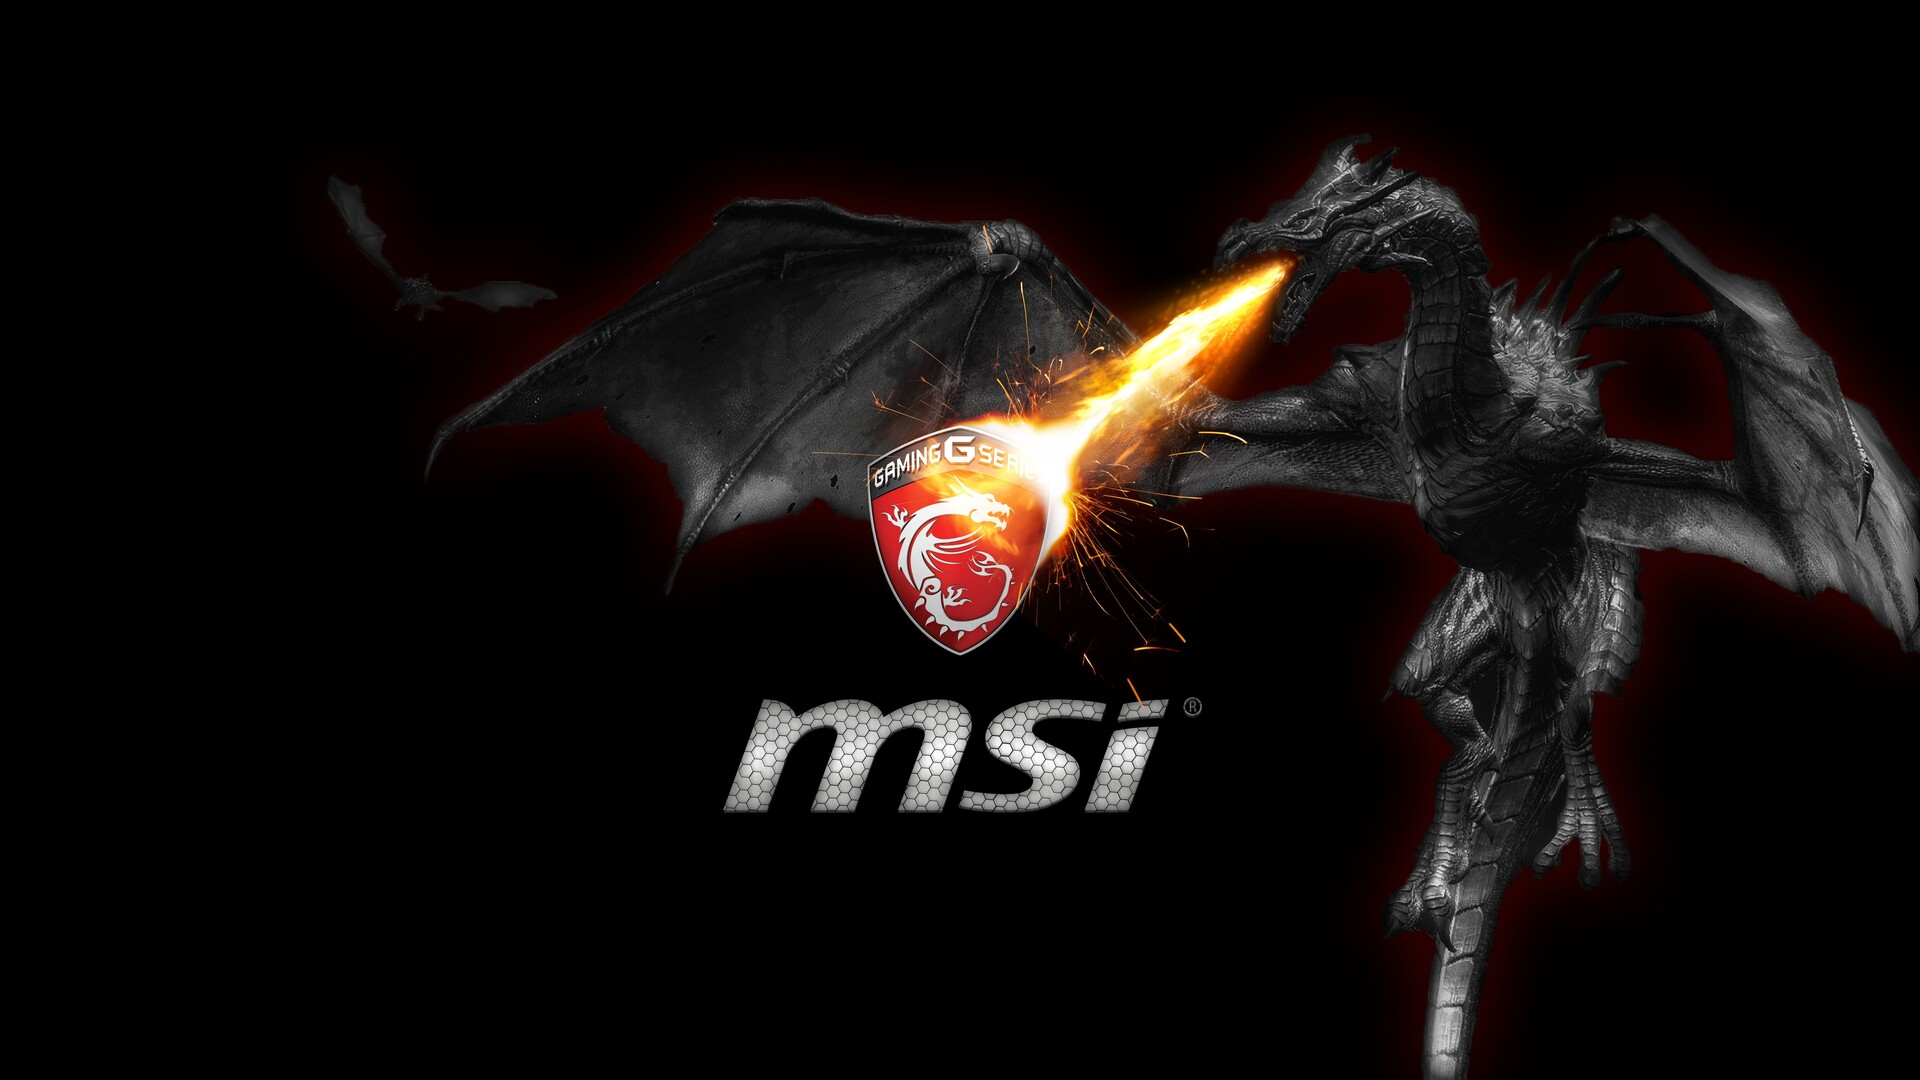 10 New Msi Gaming Series Wallpaper Full Hd 1920 1080 For: 1920x1080 MSI Laptop Full HD 1080P HD 4k Wallpapers